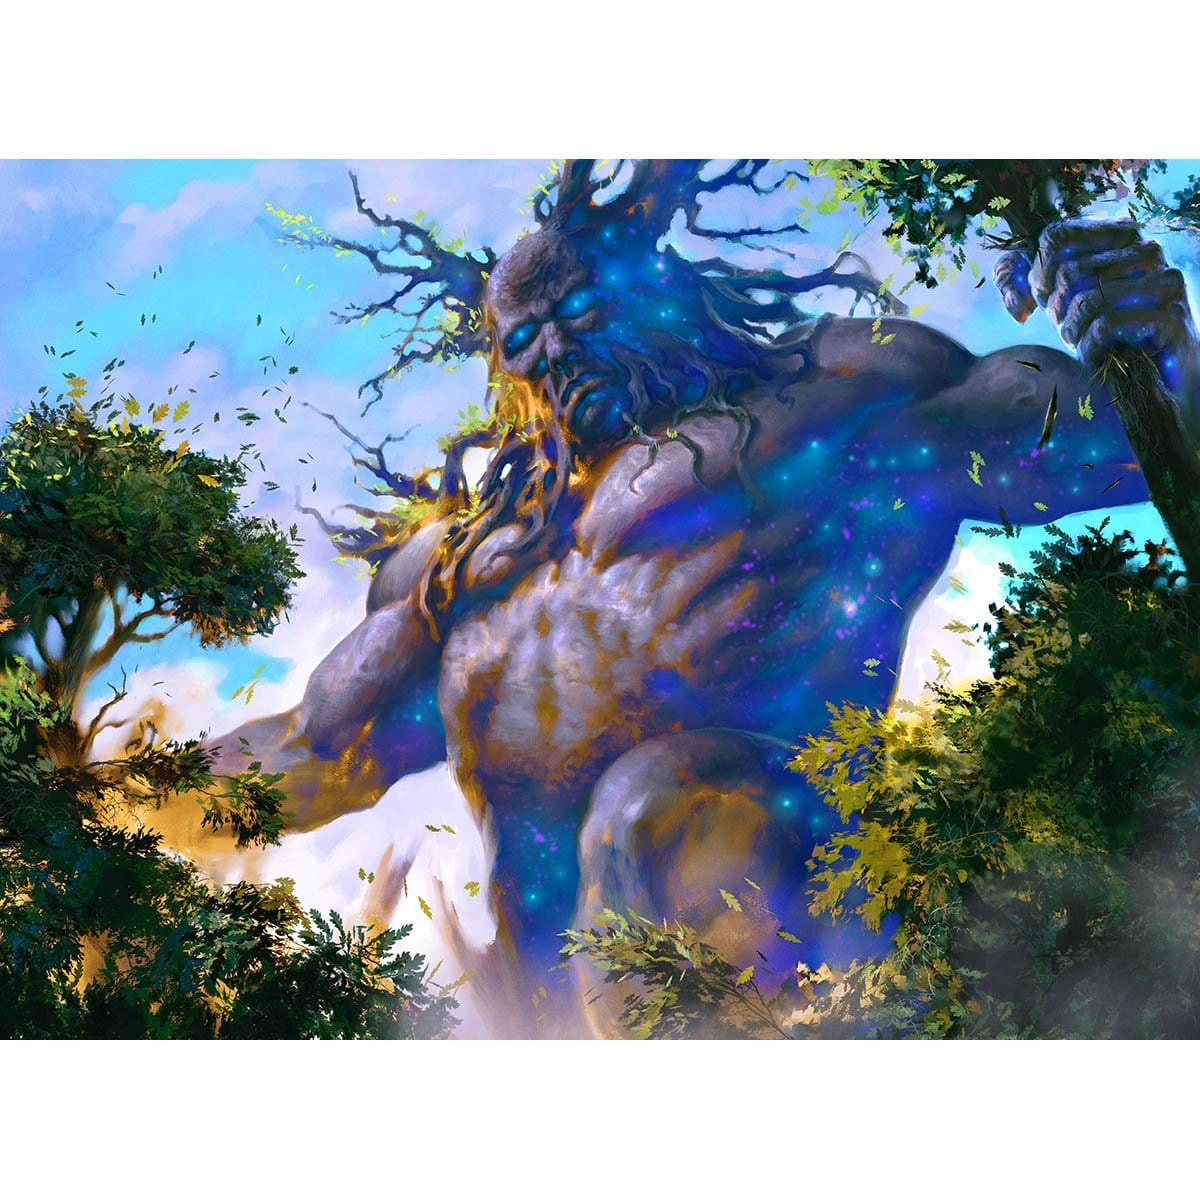 Nyxborn Colossus Print - Print - Original Magic Art - Accessories for Magic the Gathering and other card games